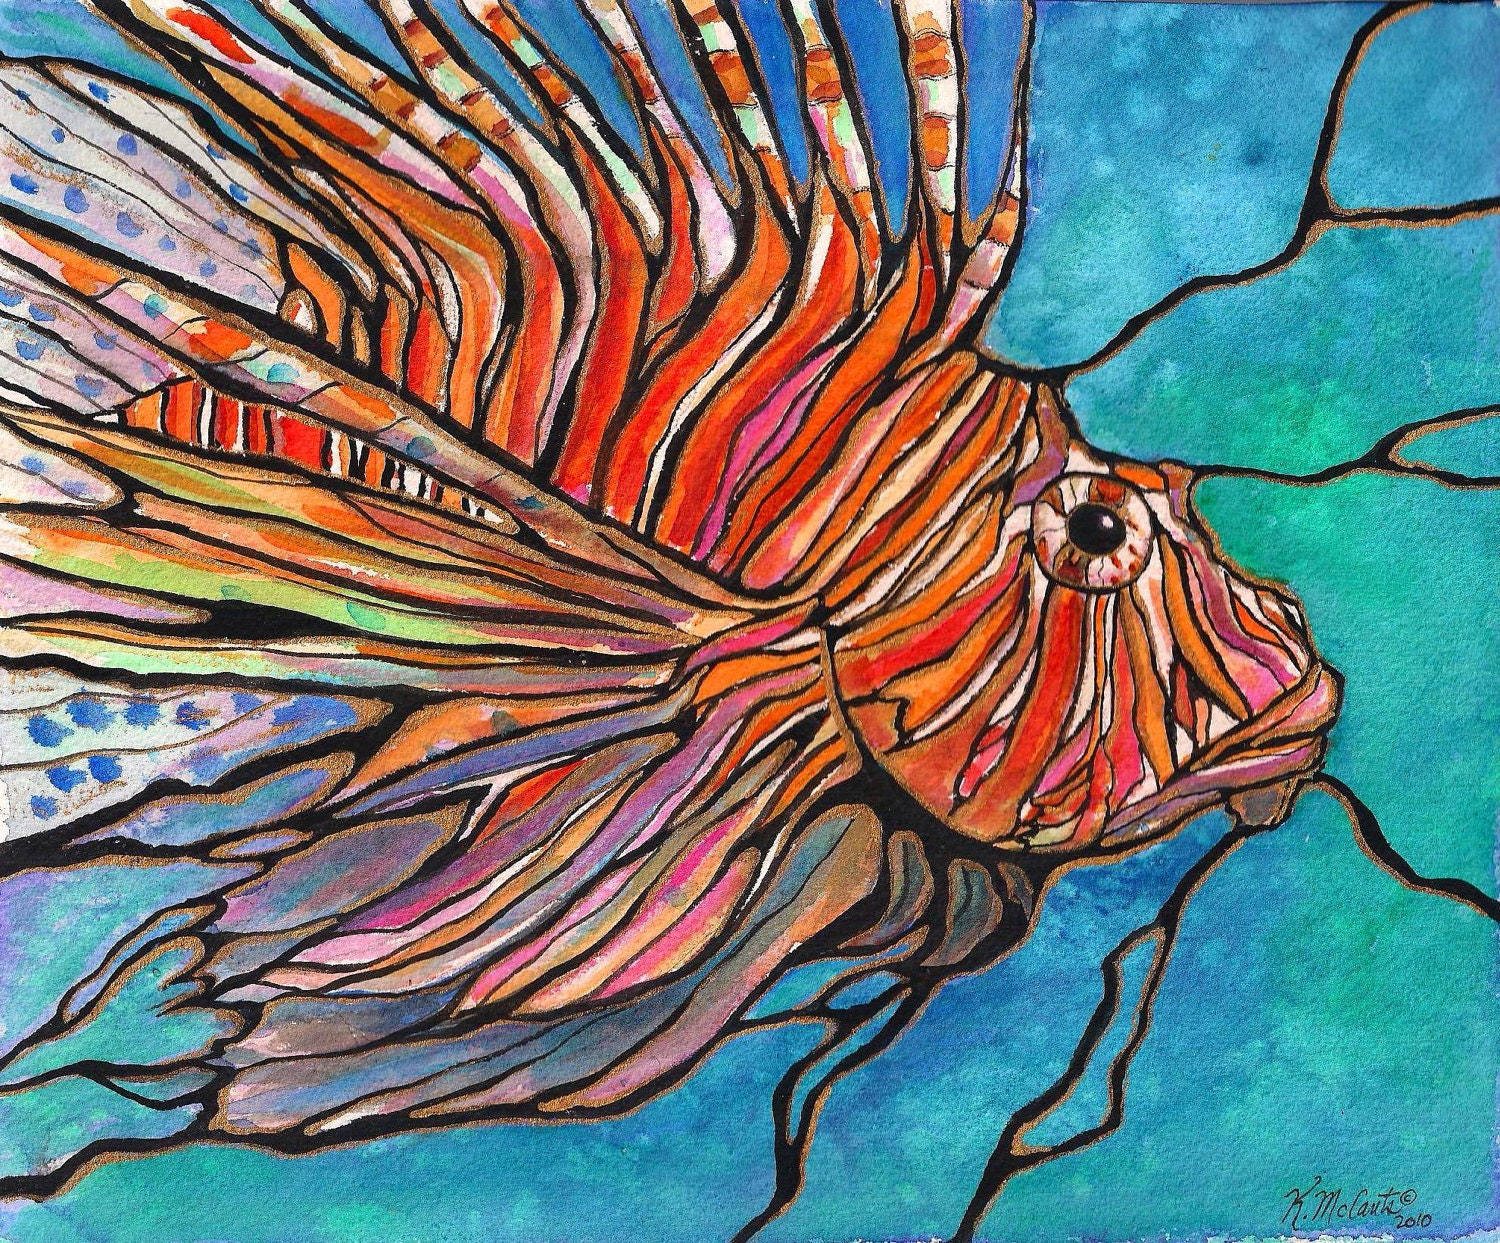 "Colorful LIONFISH Tropical Fish Coral Reef Art 8""x10"" PRINT of original by K.McCants Cool Abstract Stained Glass Style - karenmccantsart"